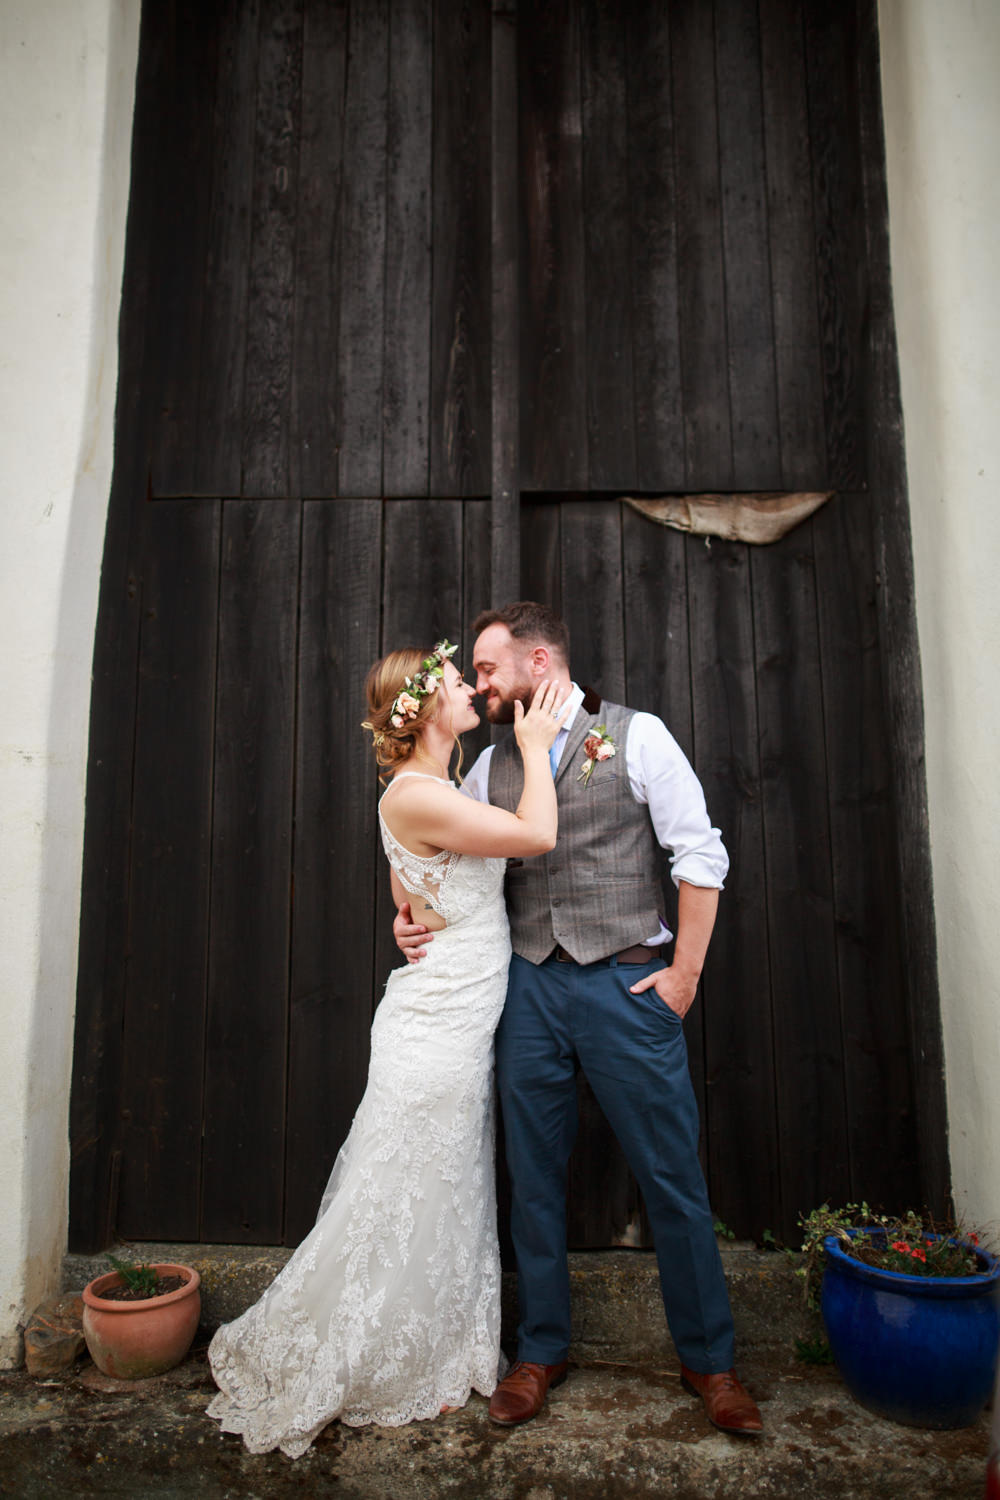 Windout Barn Farm Wedding Photographs 067_.jpg